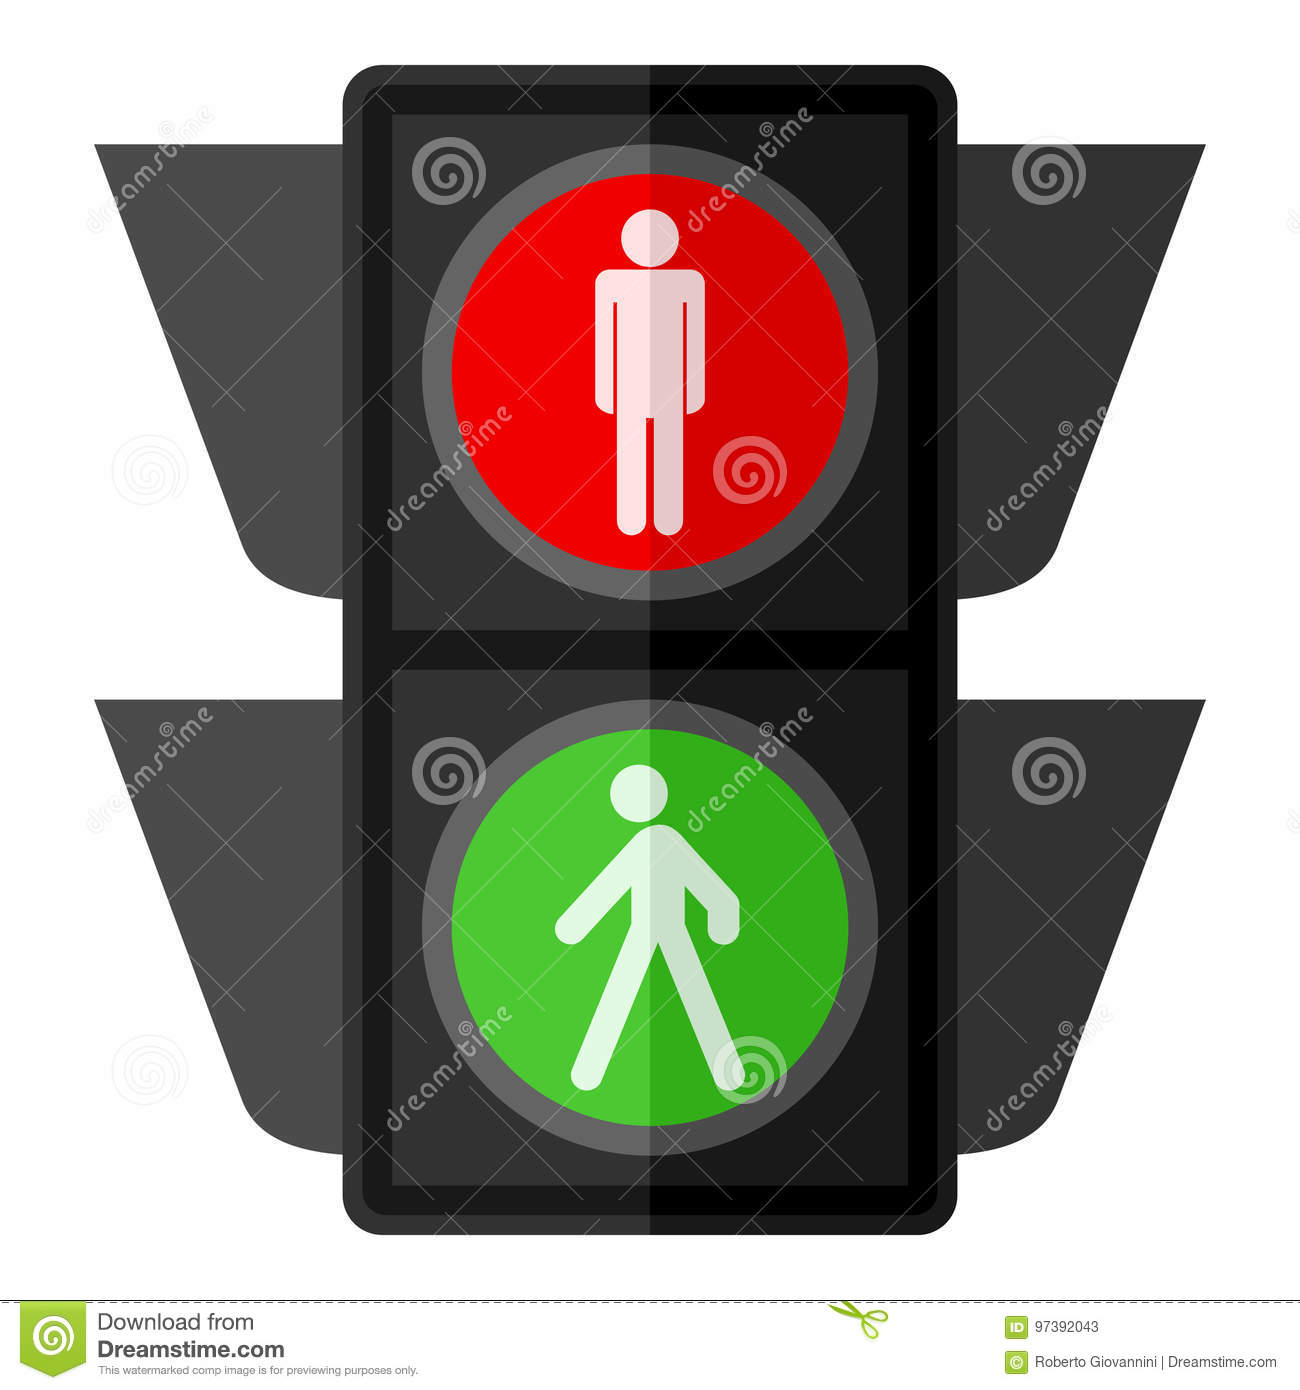 Red Signal Pedestrian Traffic Light Stock Illustrations – 263 Red ... for pedestrian traffic light clipart  51ane